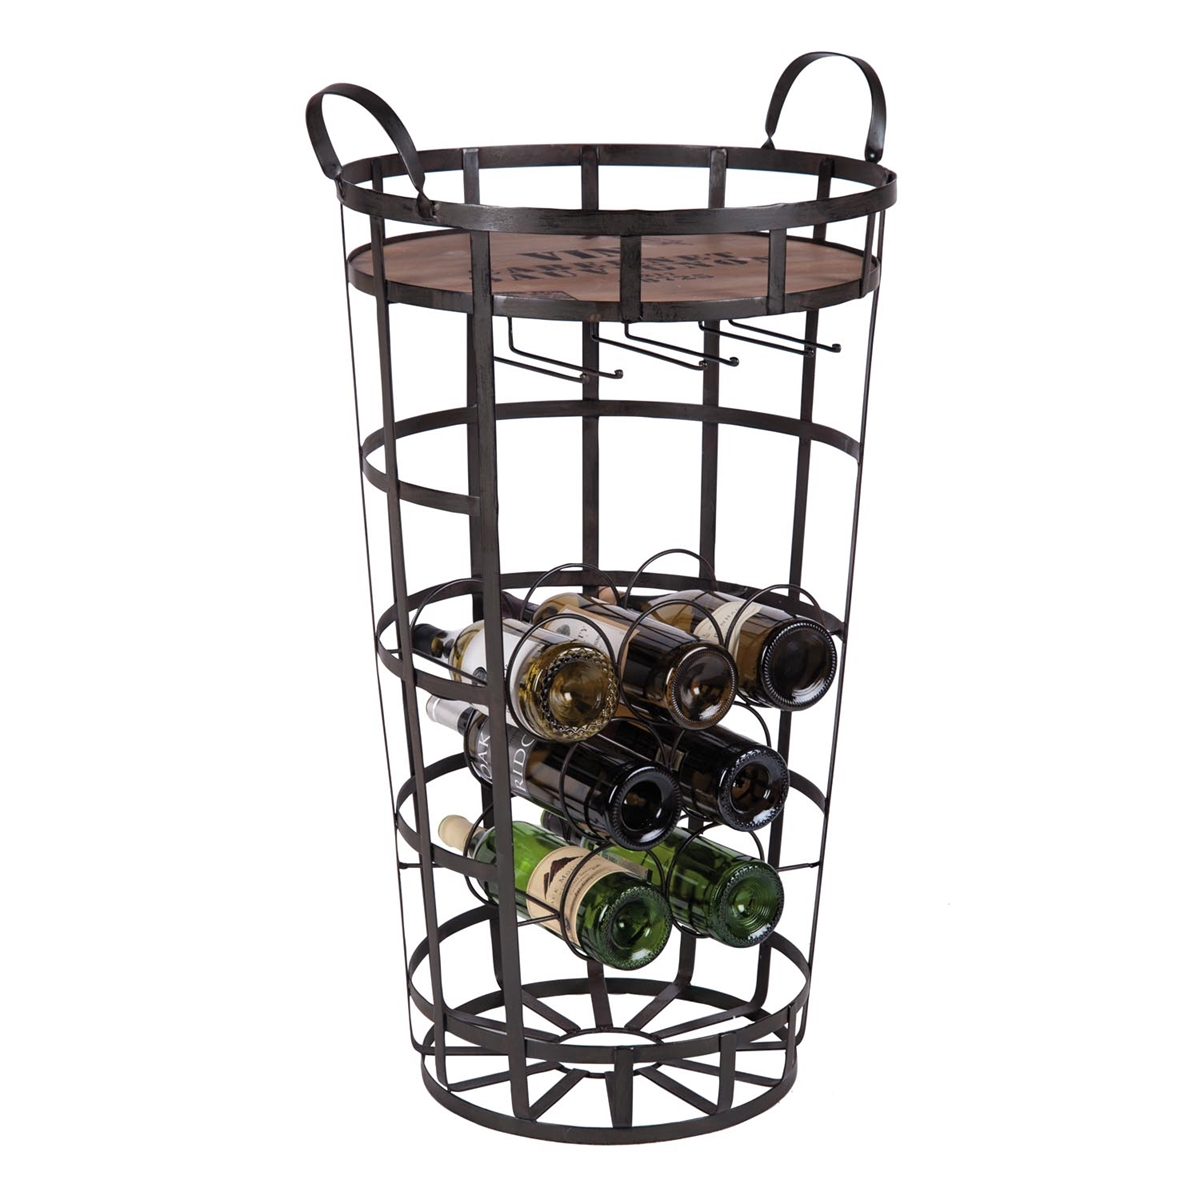 sc 1 st  Plum u0026 Post & 7 Bottle Manhattan Mini Bar Metal Wine Rack | Plum u0026 Post